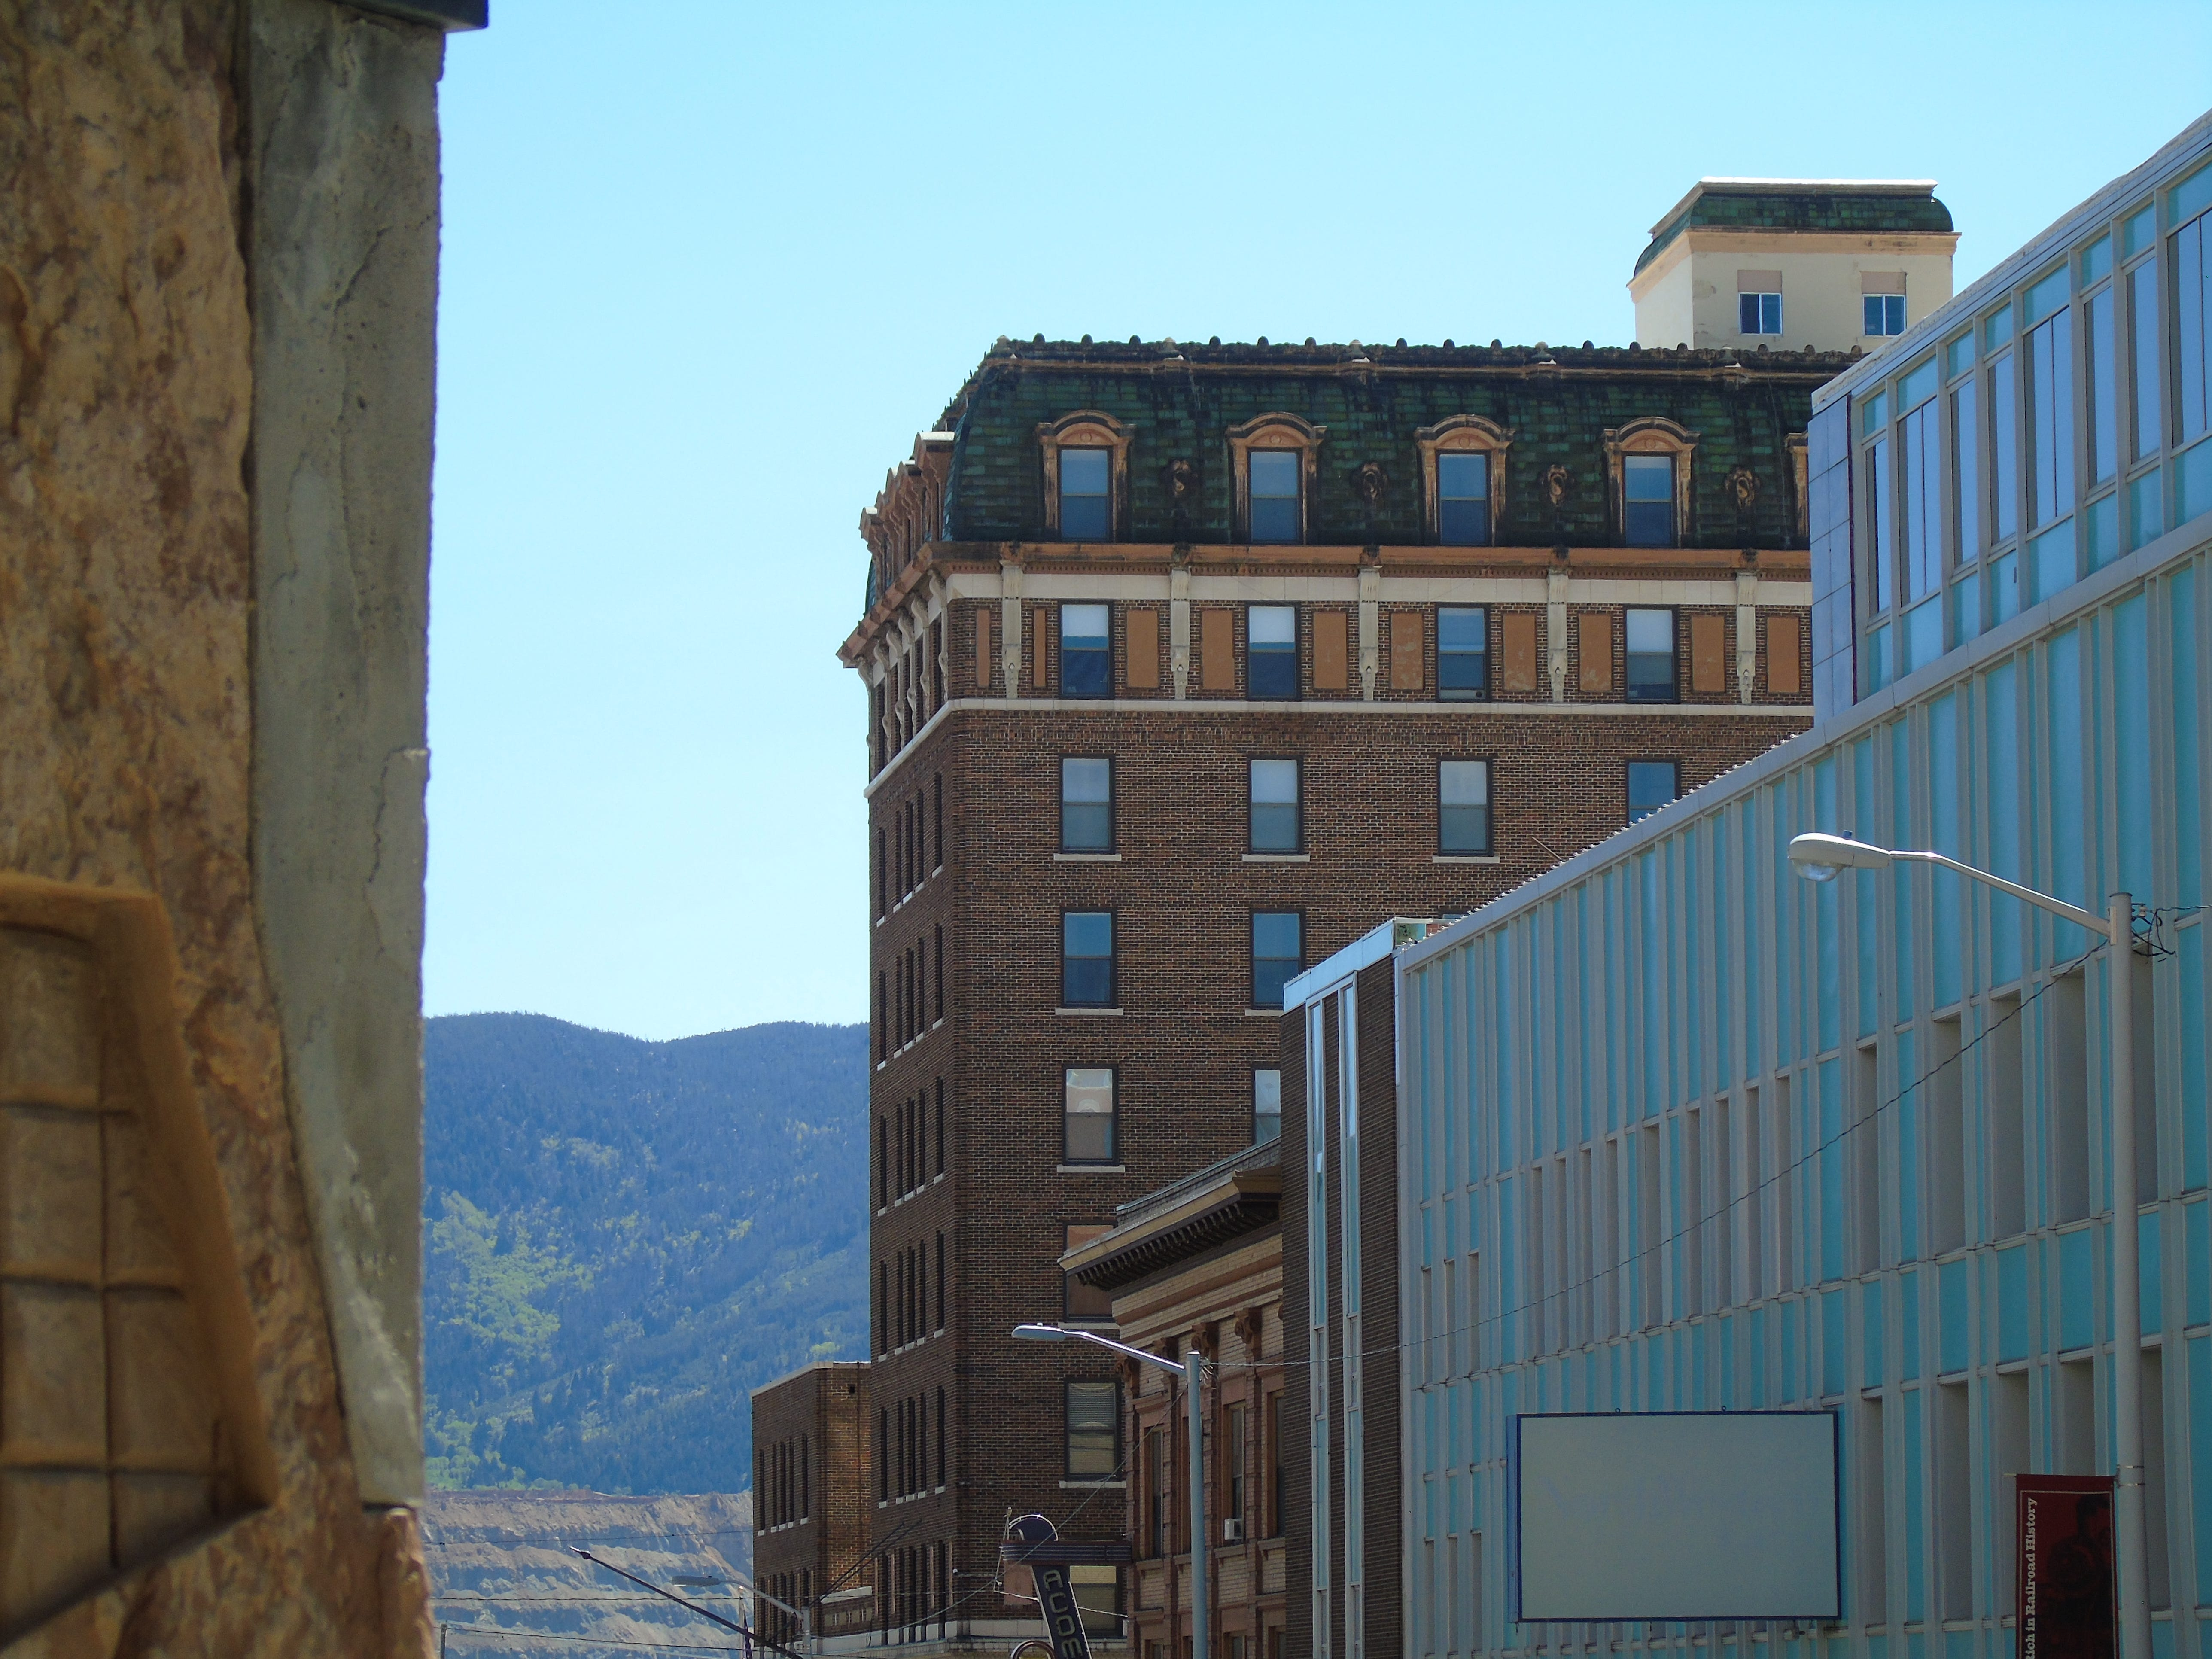 Hotel Finlen is a launching place for easy walks or drives in Uptown Butte. If you can't stay, it's worth checking out the lobby or having a drink at the hotel's bar.